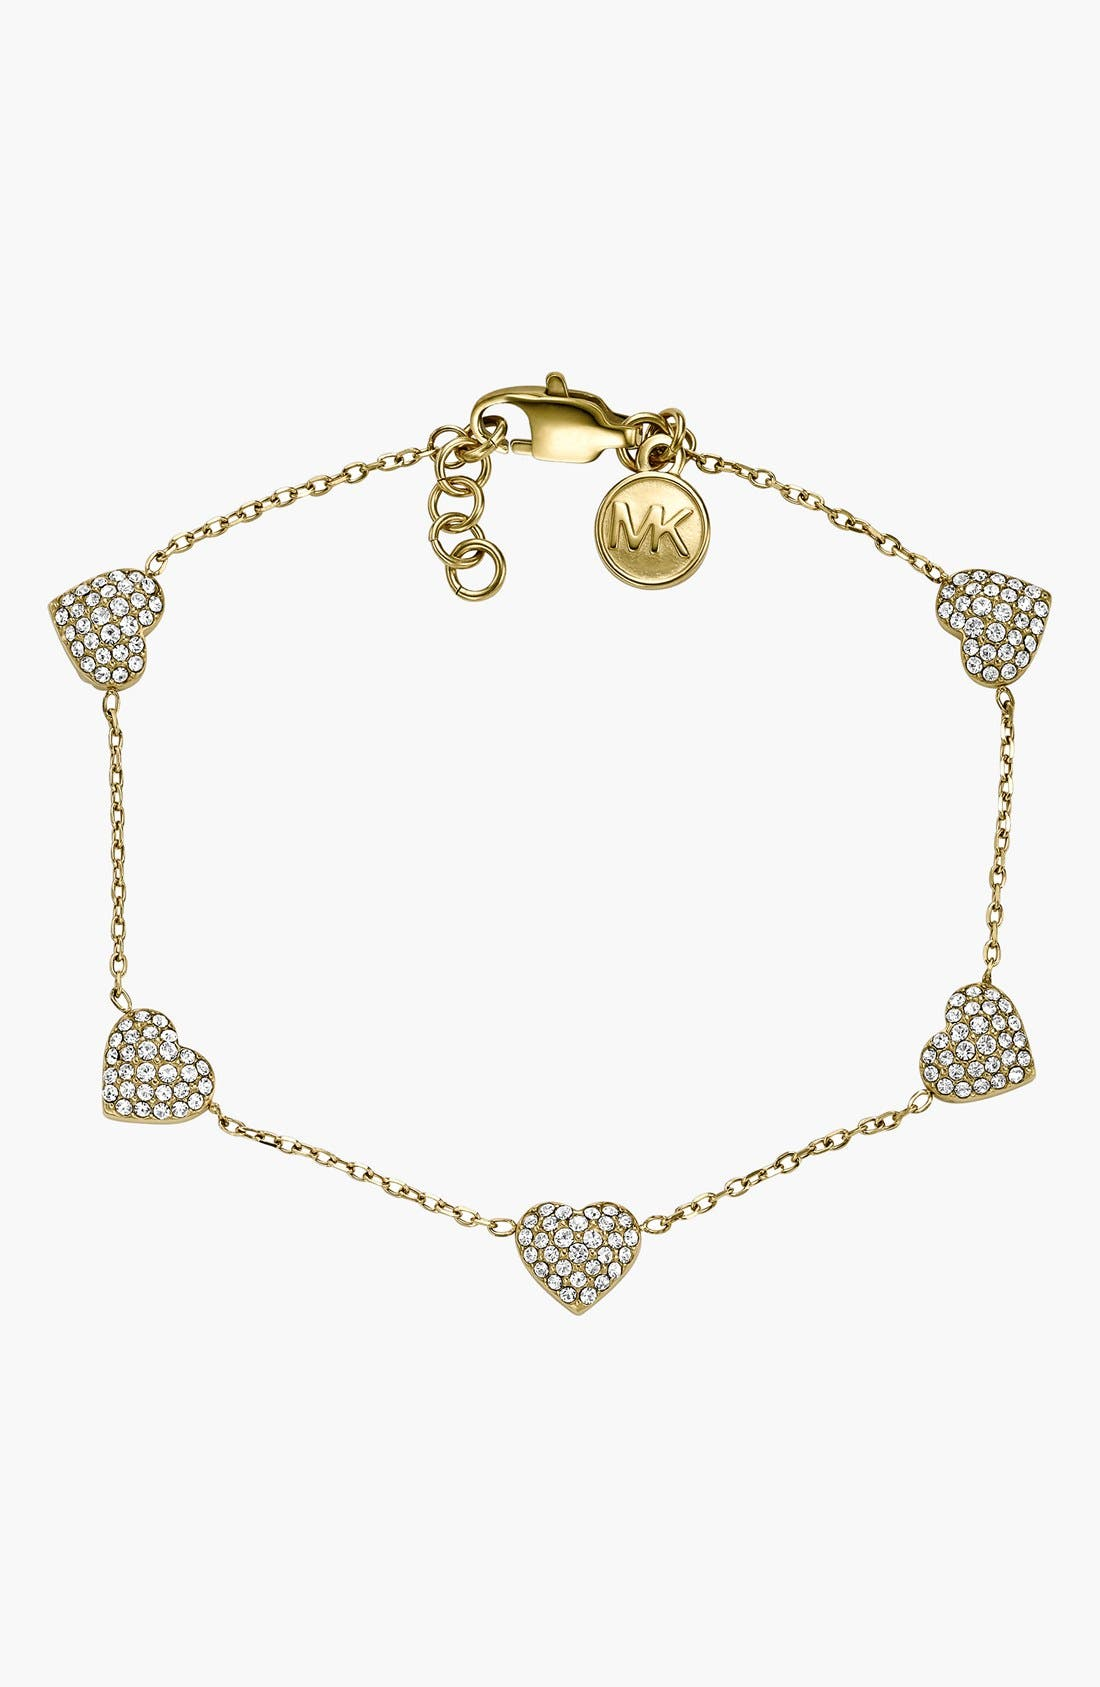 Main Image - Michael Kors 'Motif Brilliance' Pavé Heart Station Bracelet